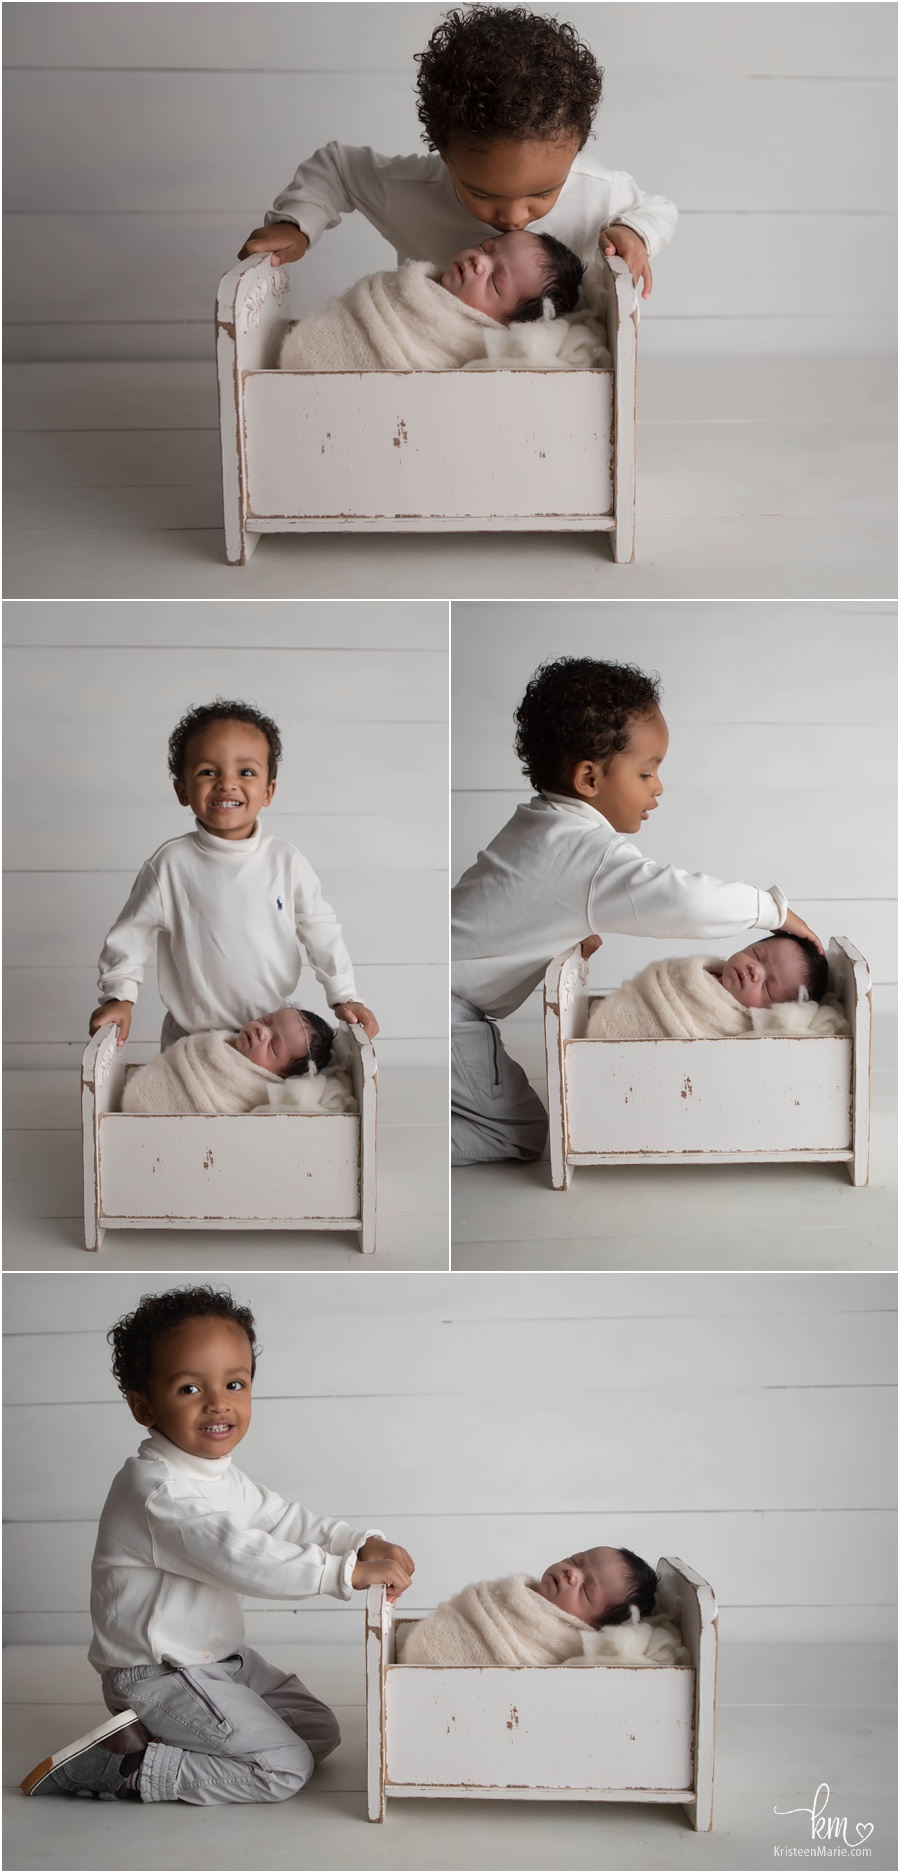 sibling poses - big brother and baby sister in crib